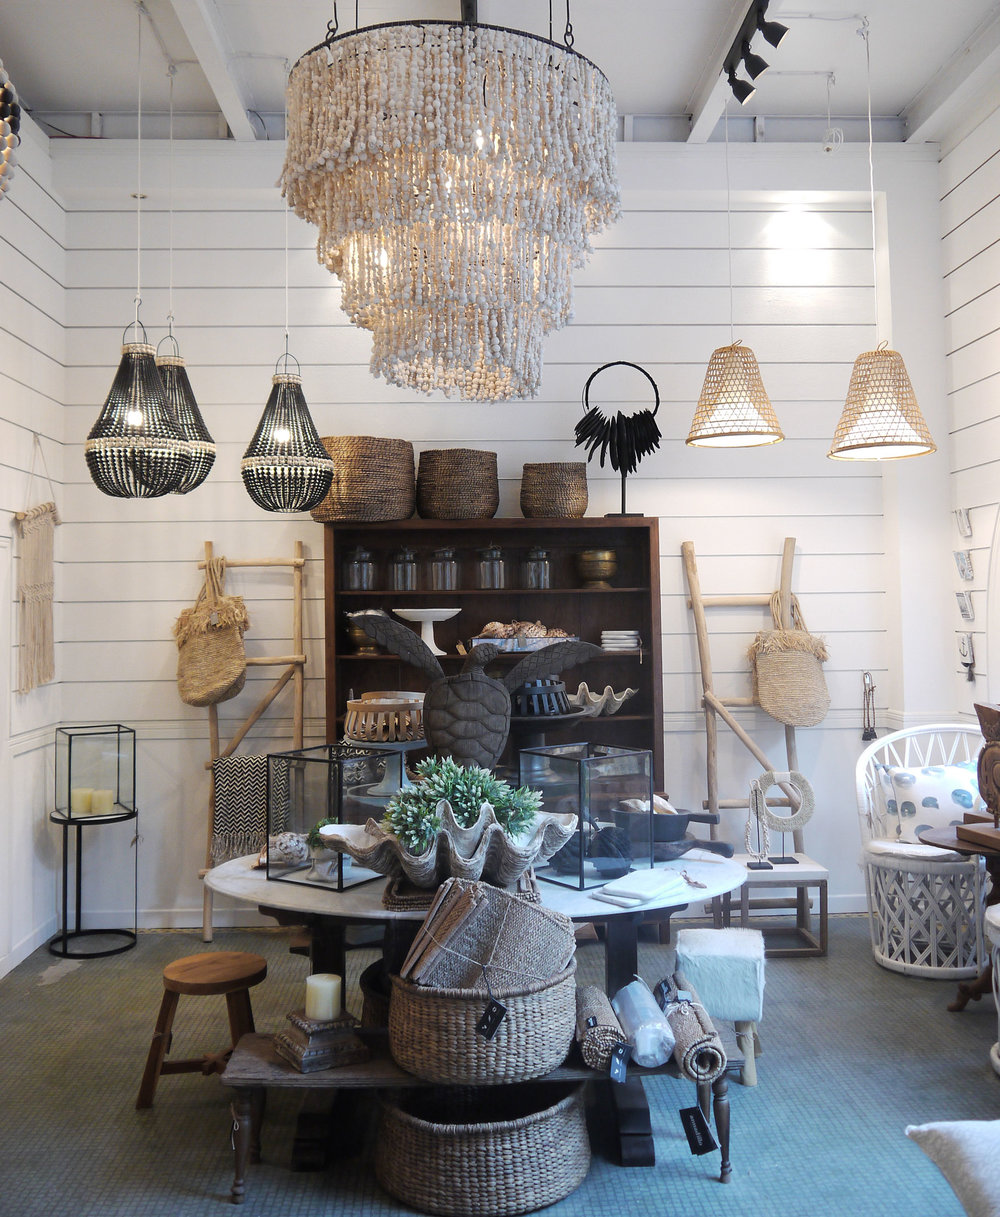 Tribe's new showroom is a fabulous collection of unique and sustainable pieces